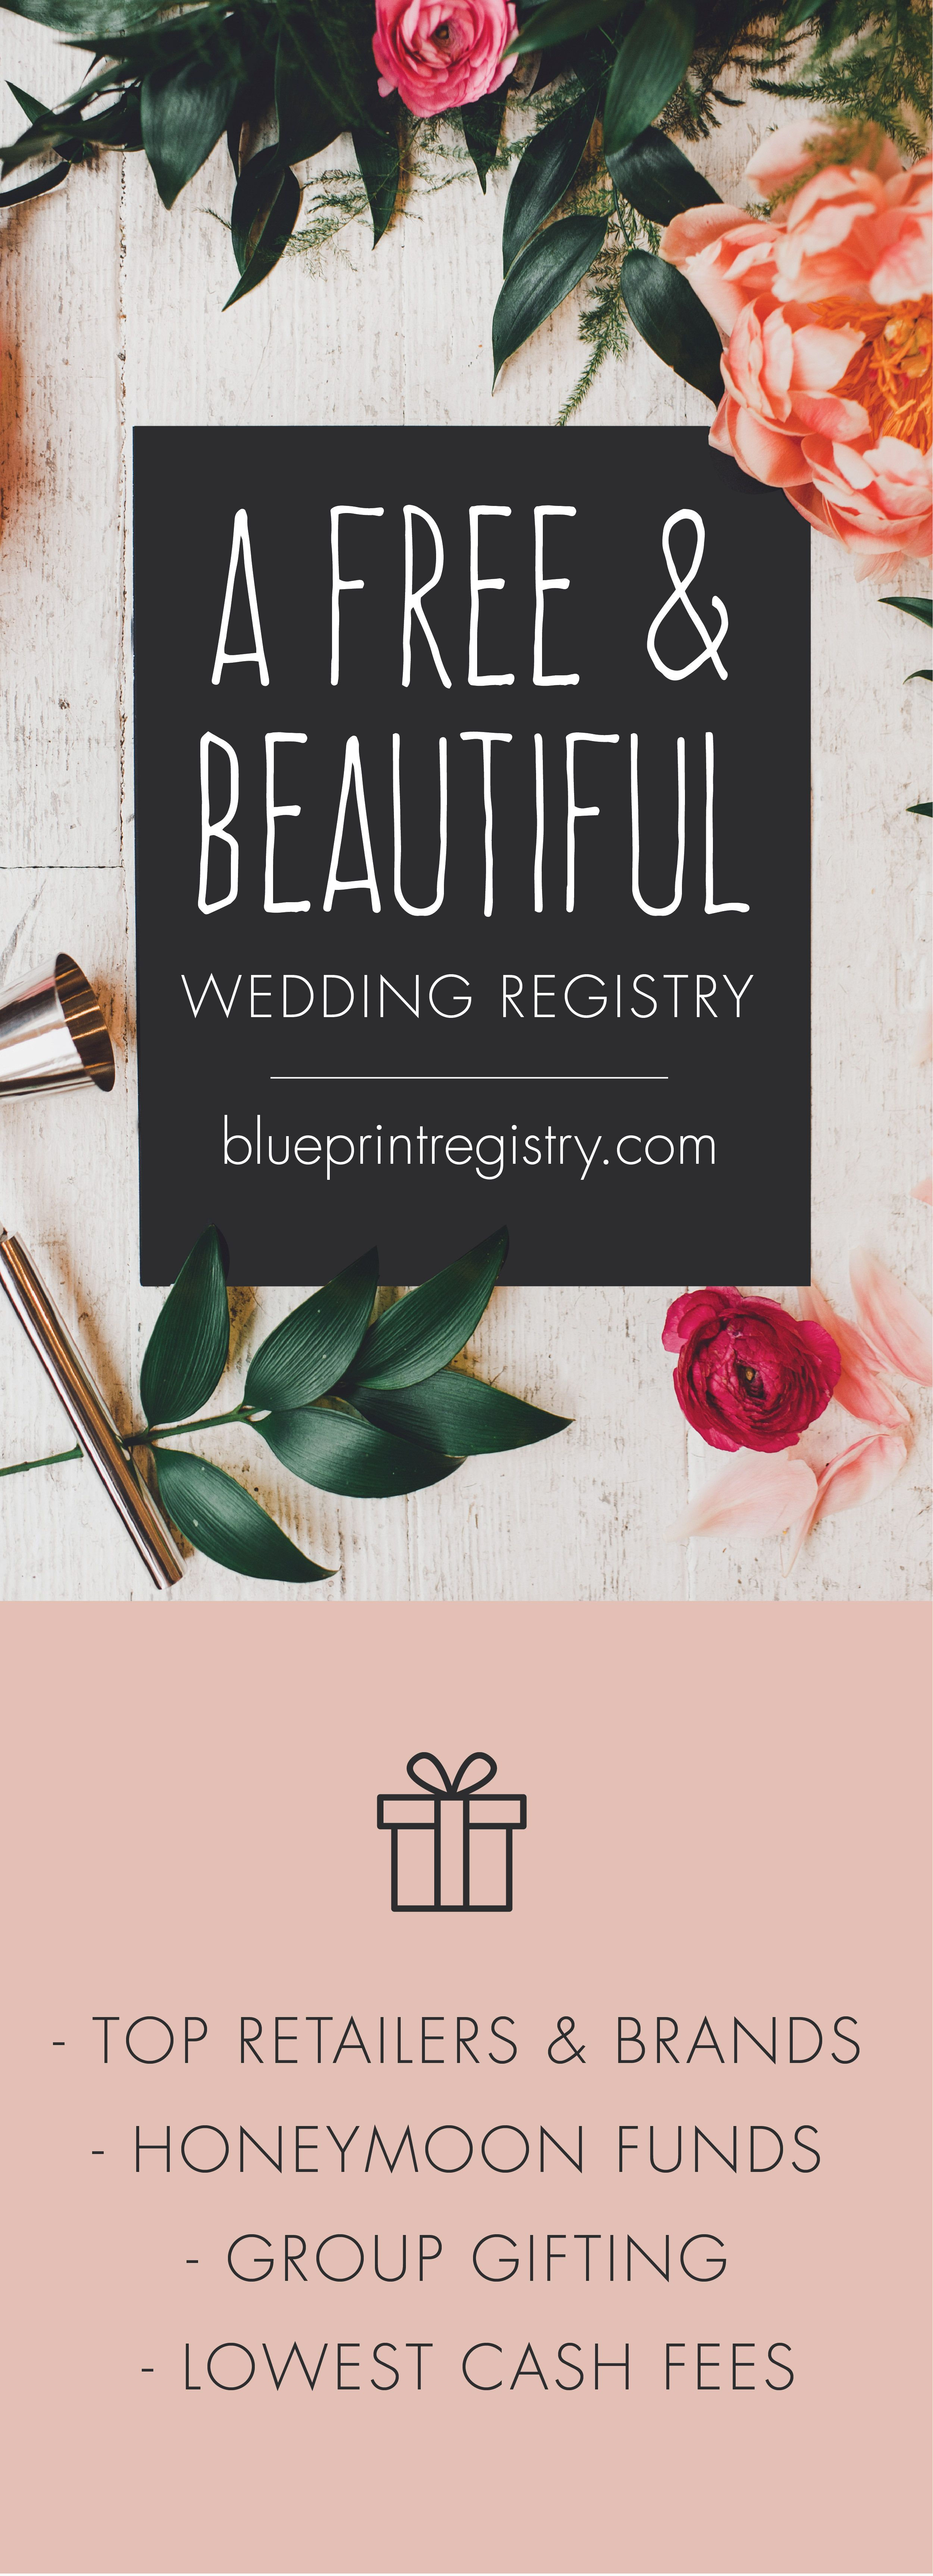 Free beautiful blueprint registry shop top retailers add gifts free beautiful blueprint registry shop top retailers add gifts from any site malvernweather Images